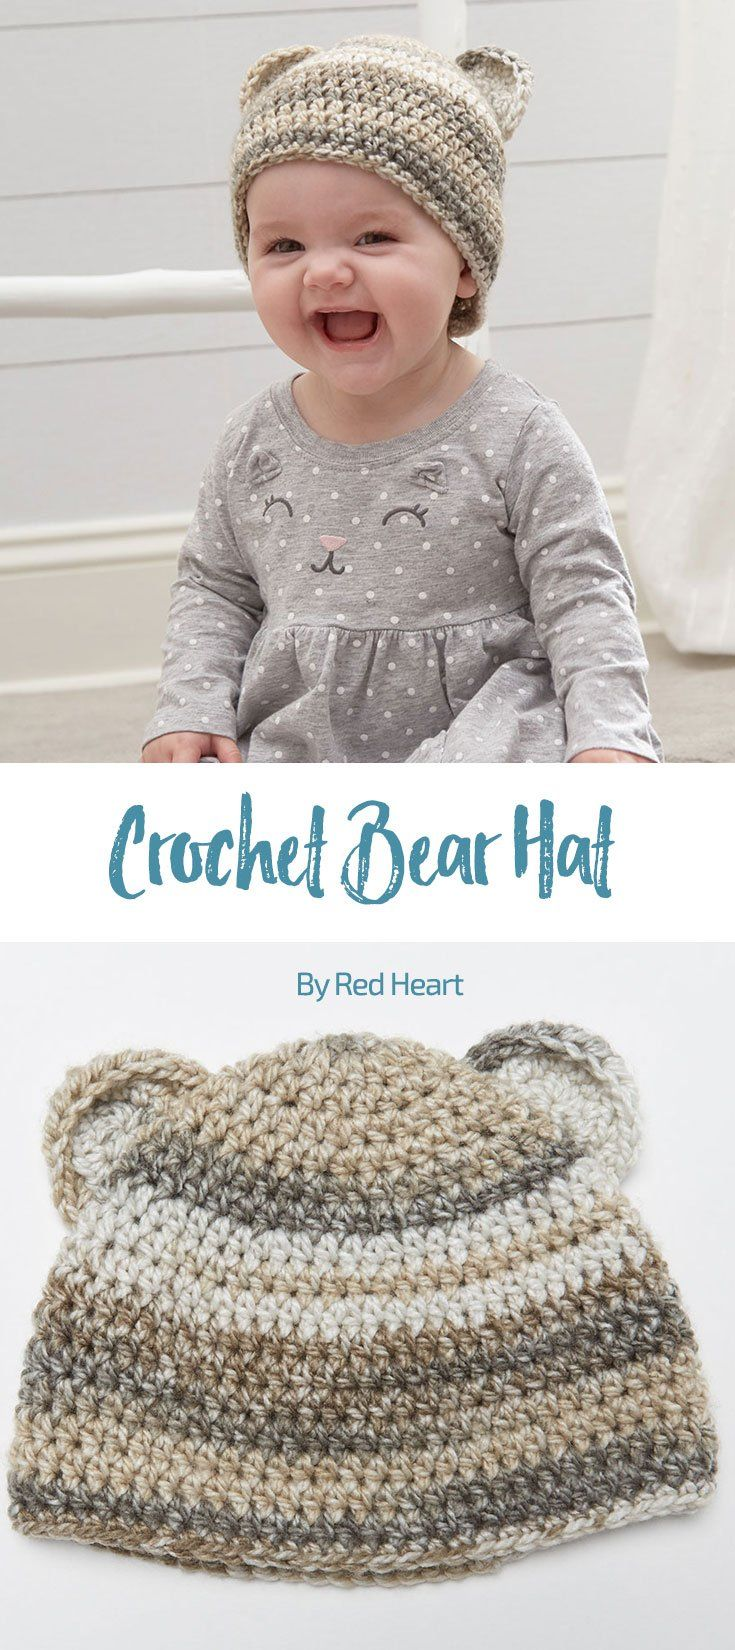 Crochet Bear Hat free crochet pattern in Hopscotch.